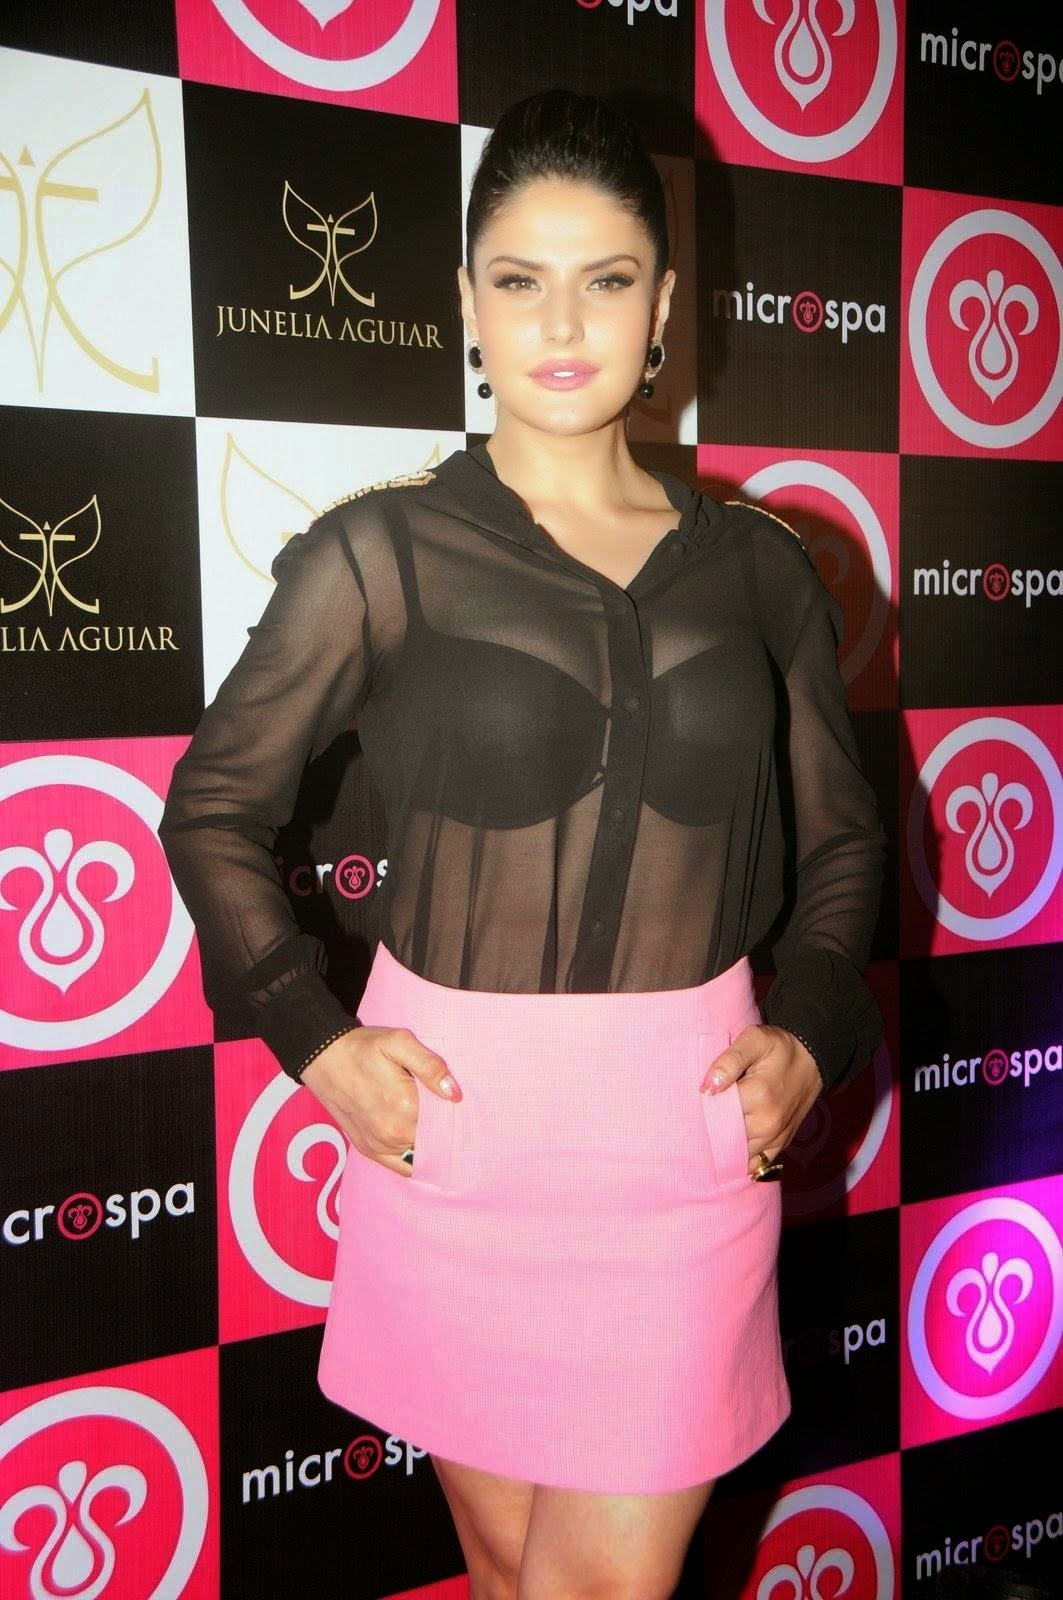 Zarine khan - Showing her Bra In a see through shirt Hot Photos